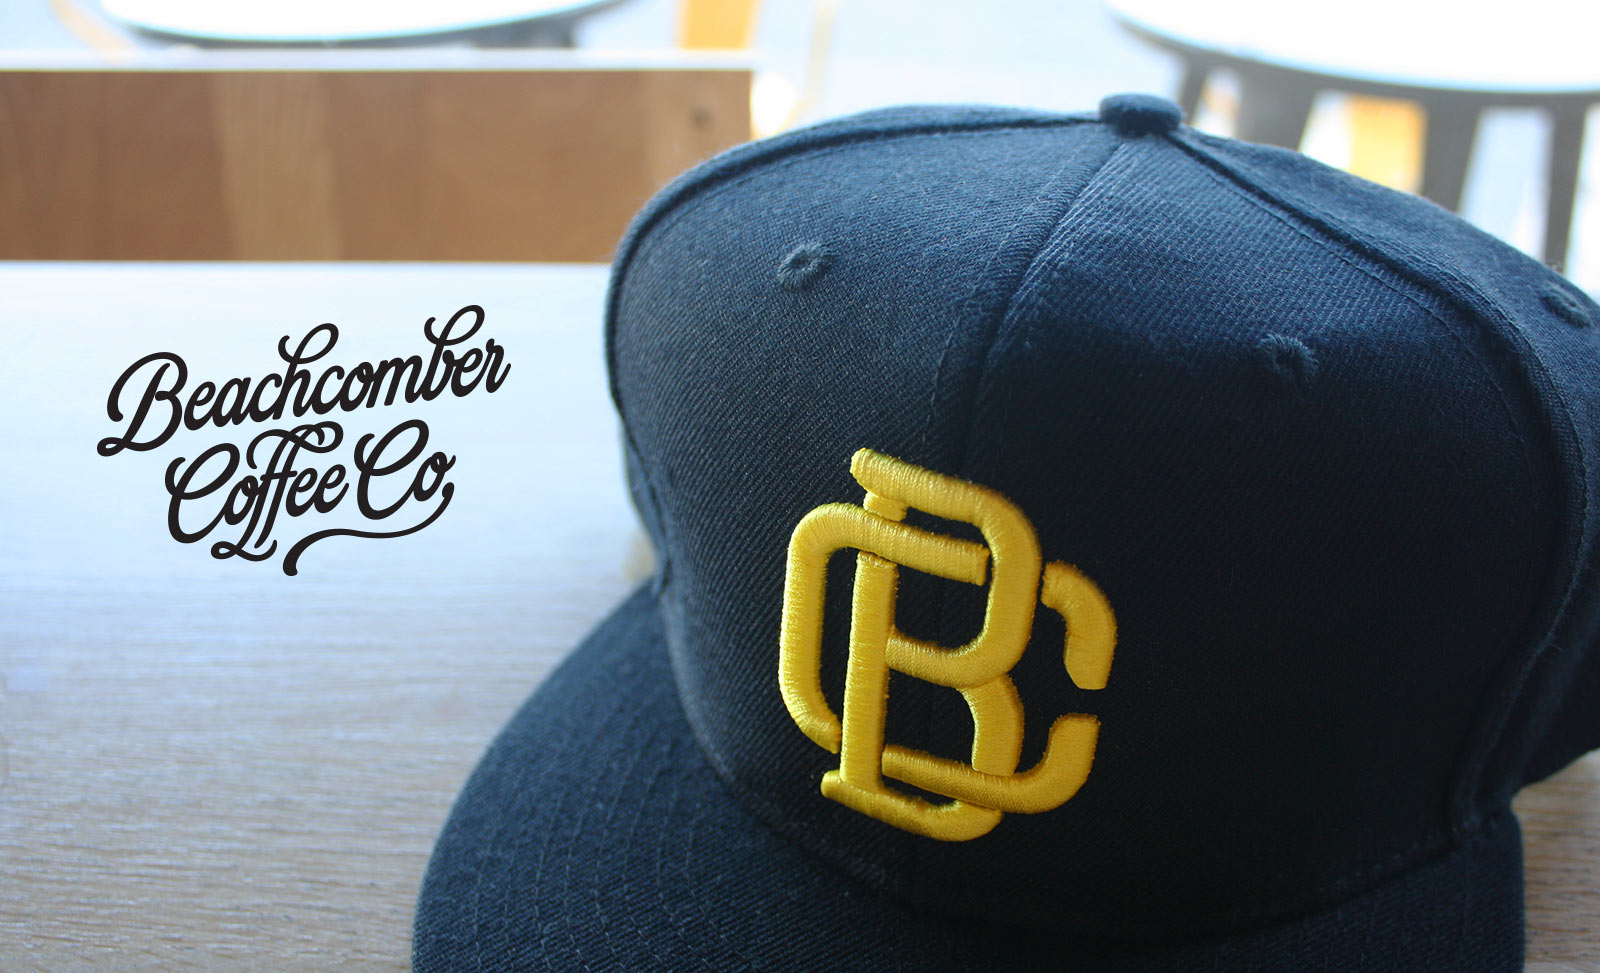 Beachcomber_coffee_hat_logo.jpg